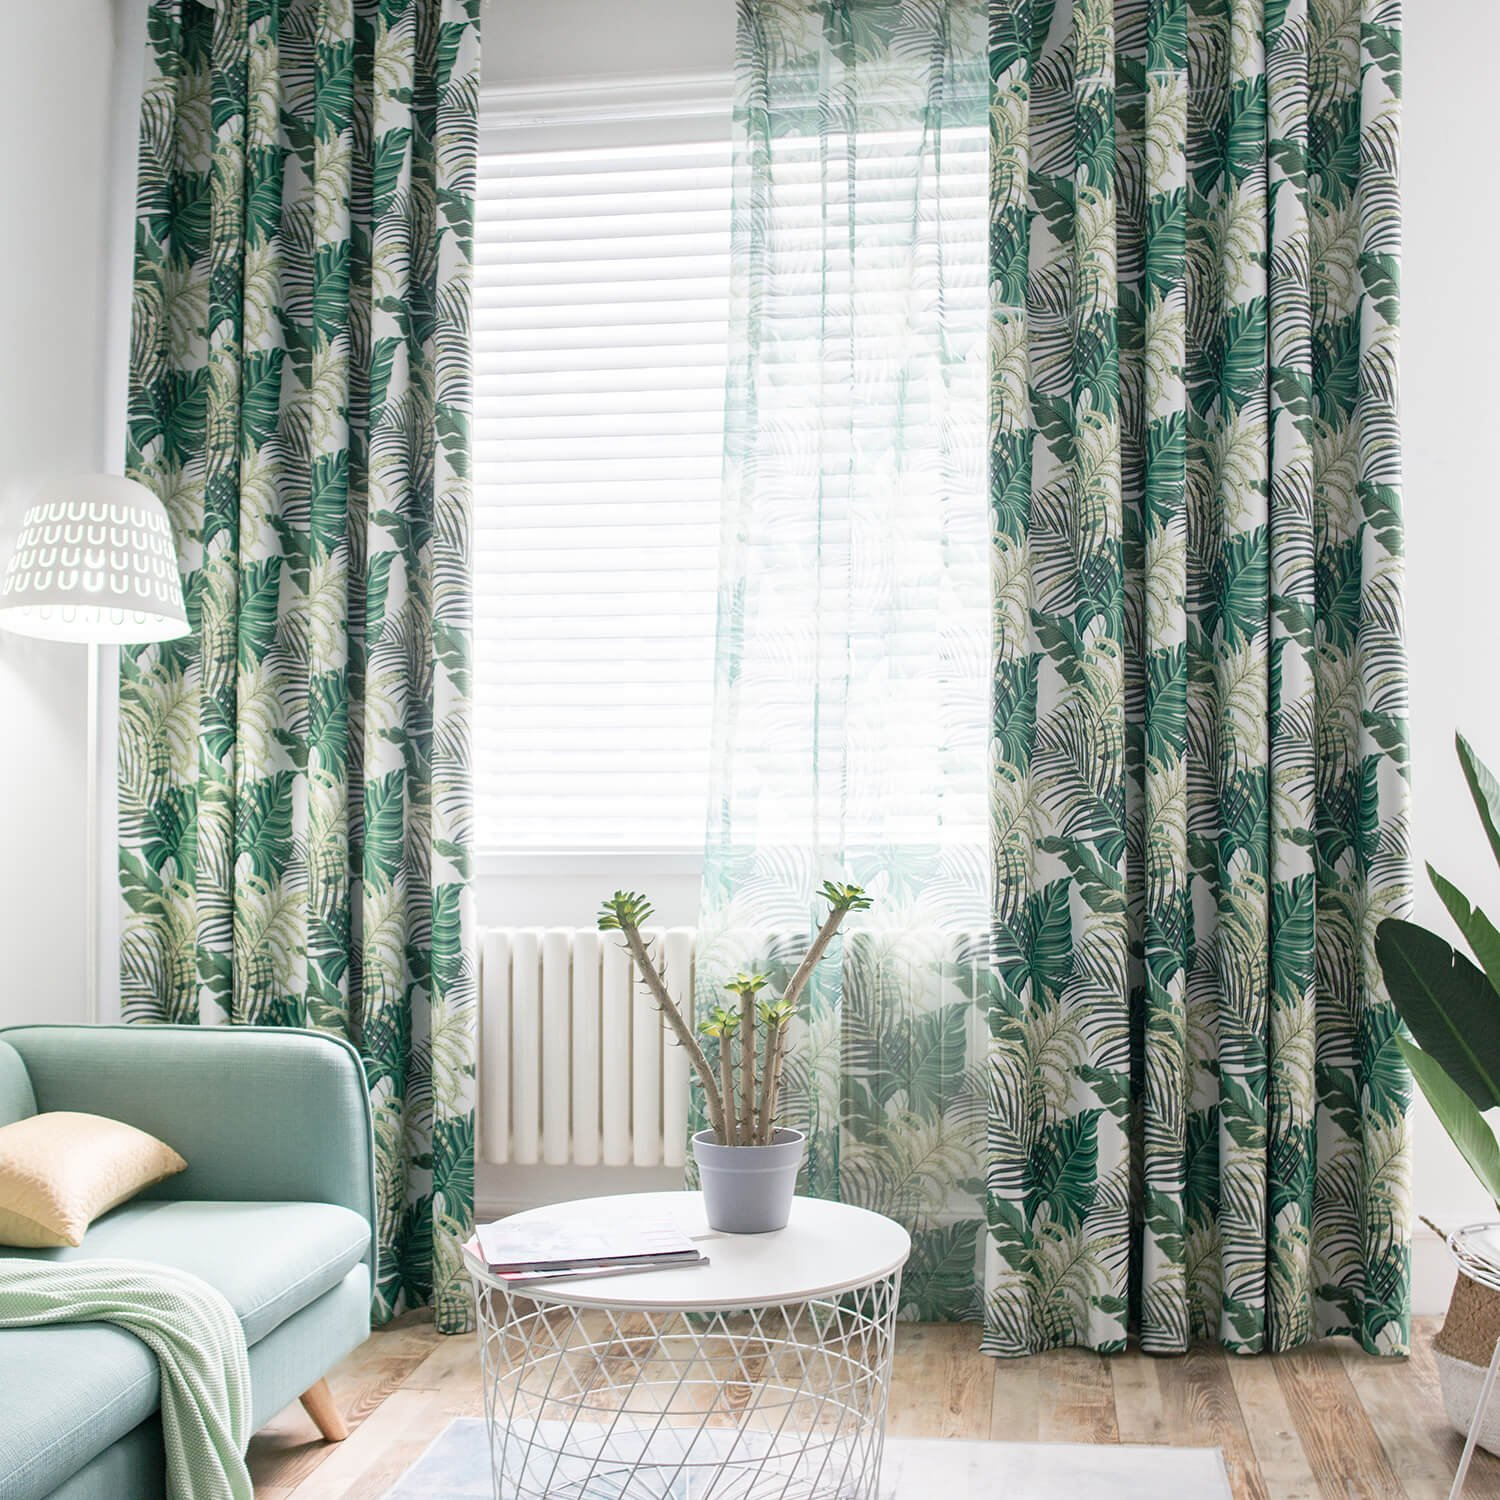 VOGOL Floral Leaves Printed Blackout Curtains, Thermal Insulated Noise Reduction Curtain Drapes Panels for Bedroom Hotel Living Room, 2 Panels, W60 x L106 inch, Green